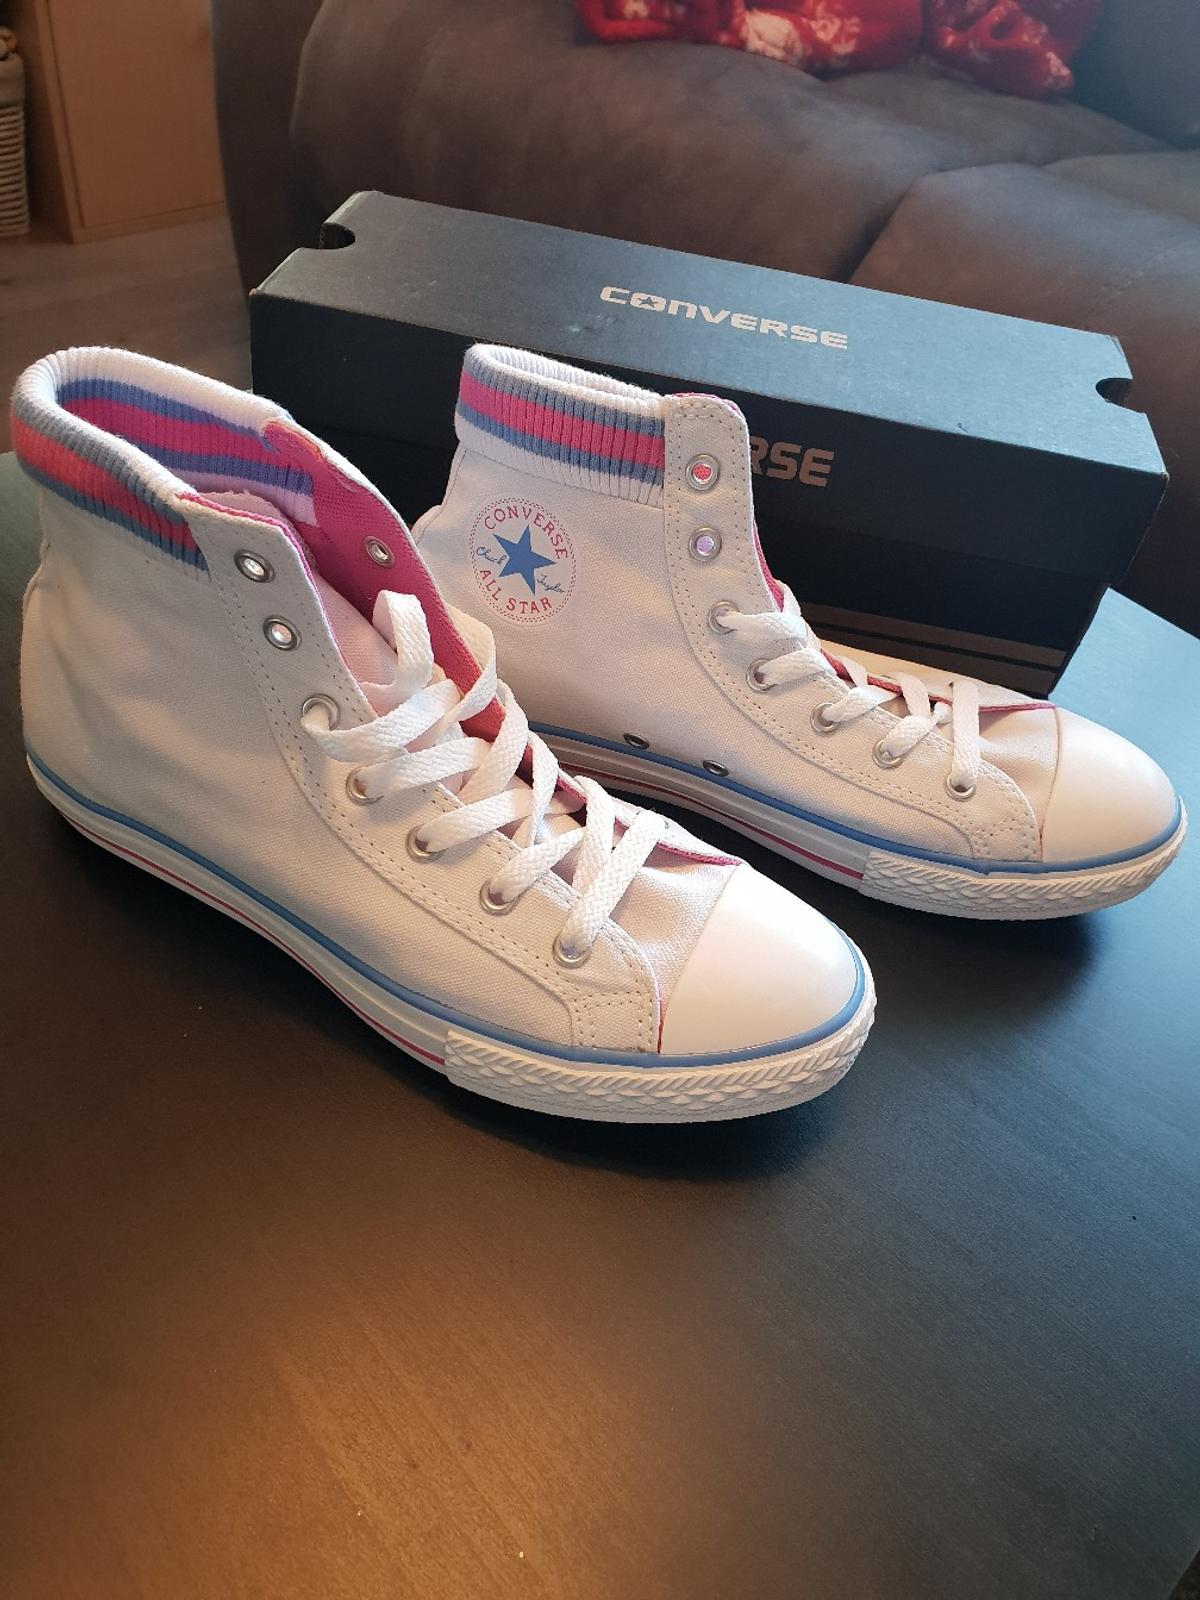 ed931c05817e Junior size 5 converse in Packmoor for £25.00 for sale - Shpock